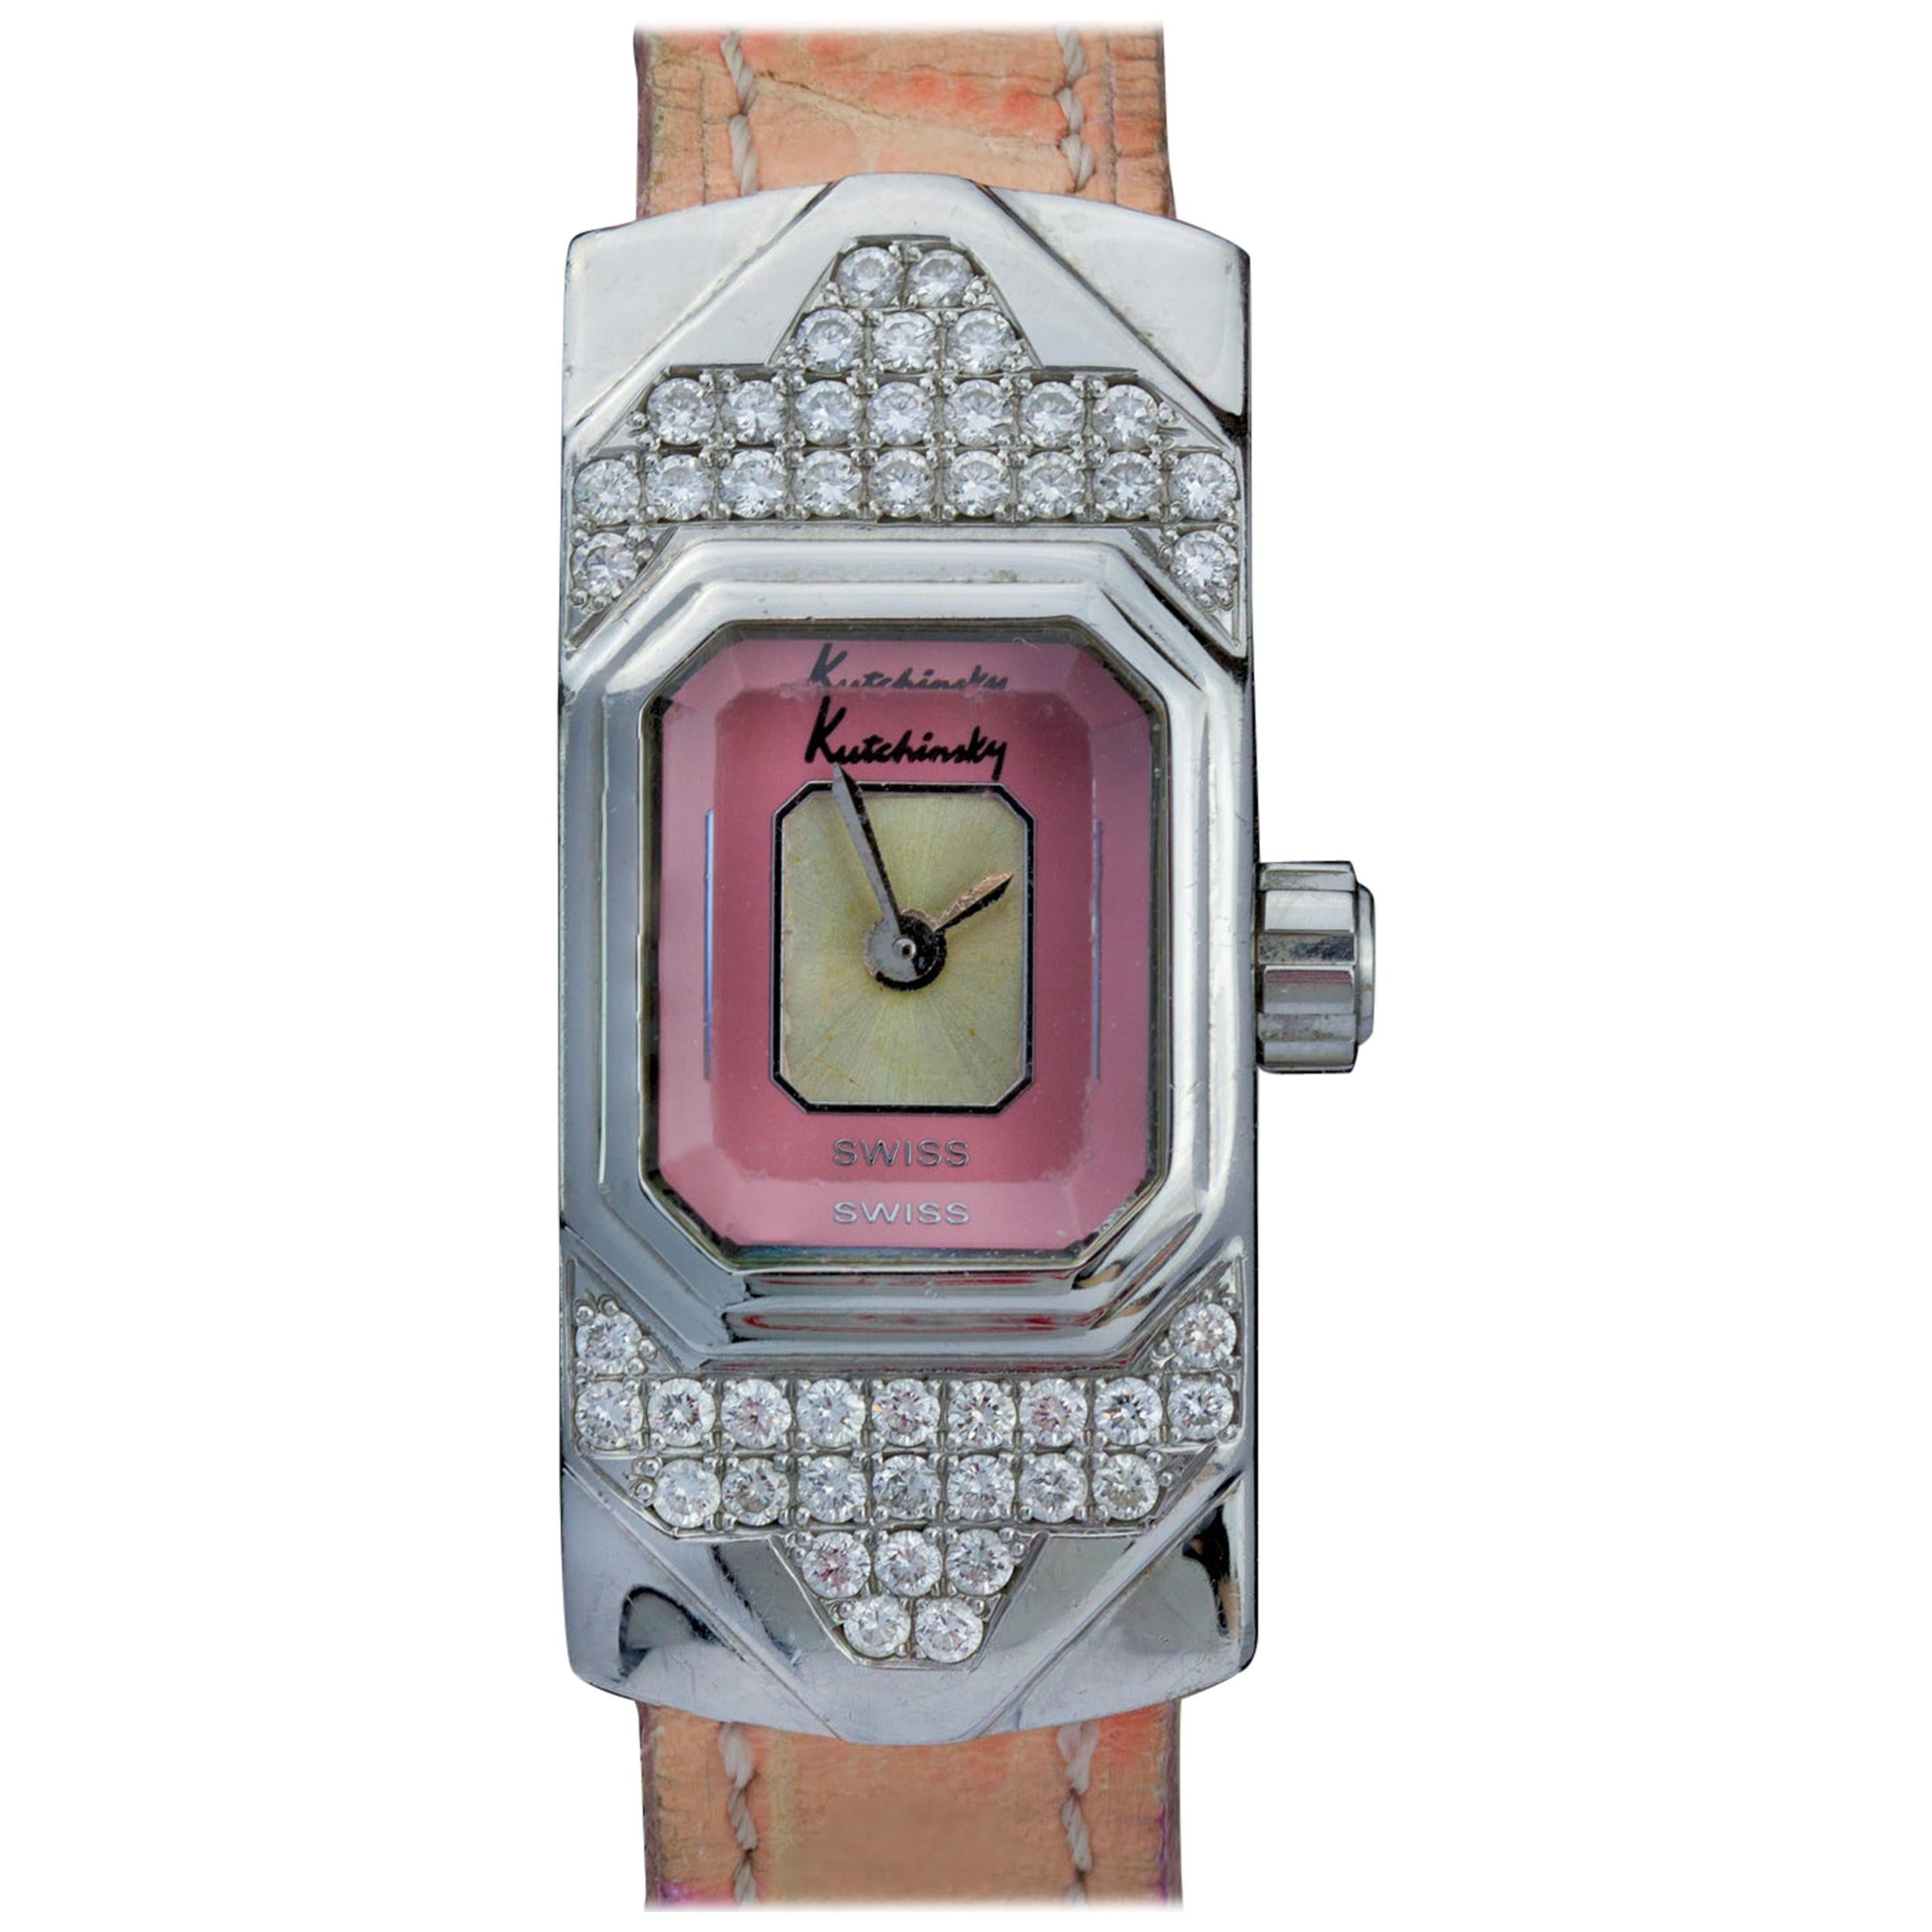 Kutchinsky Ladies Wristwatch Featuring a Pink Dial and Diamond Decorated Case